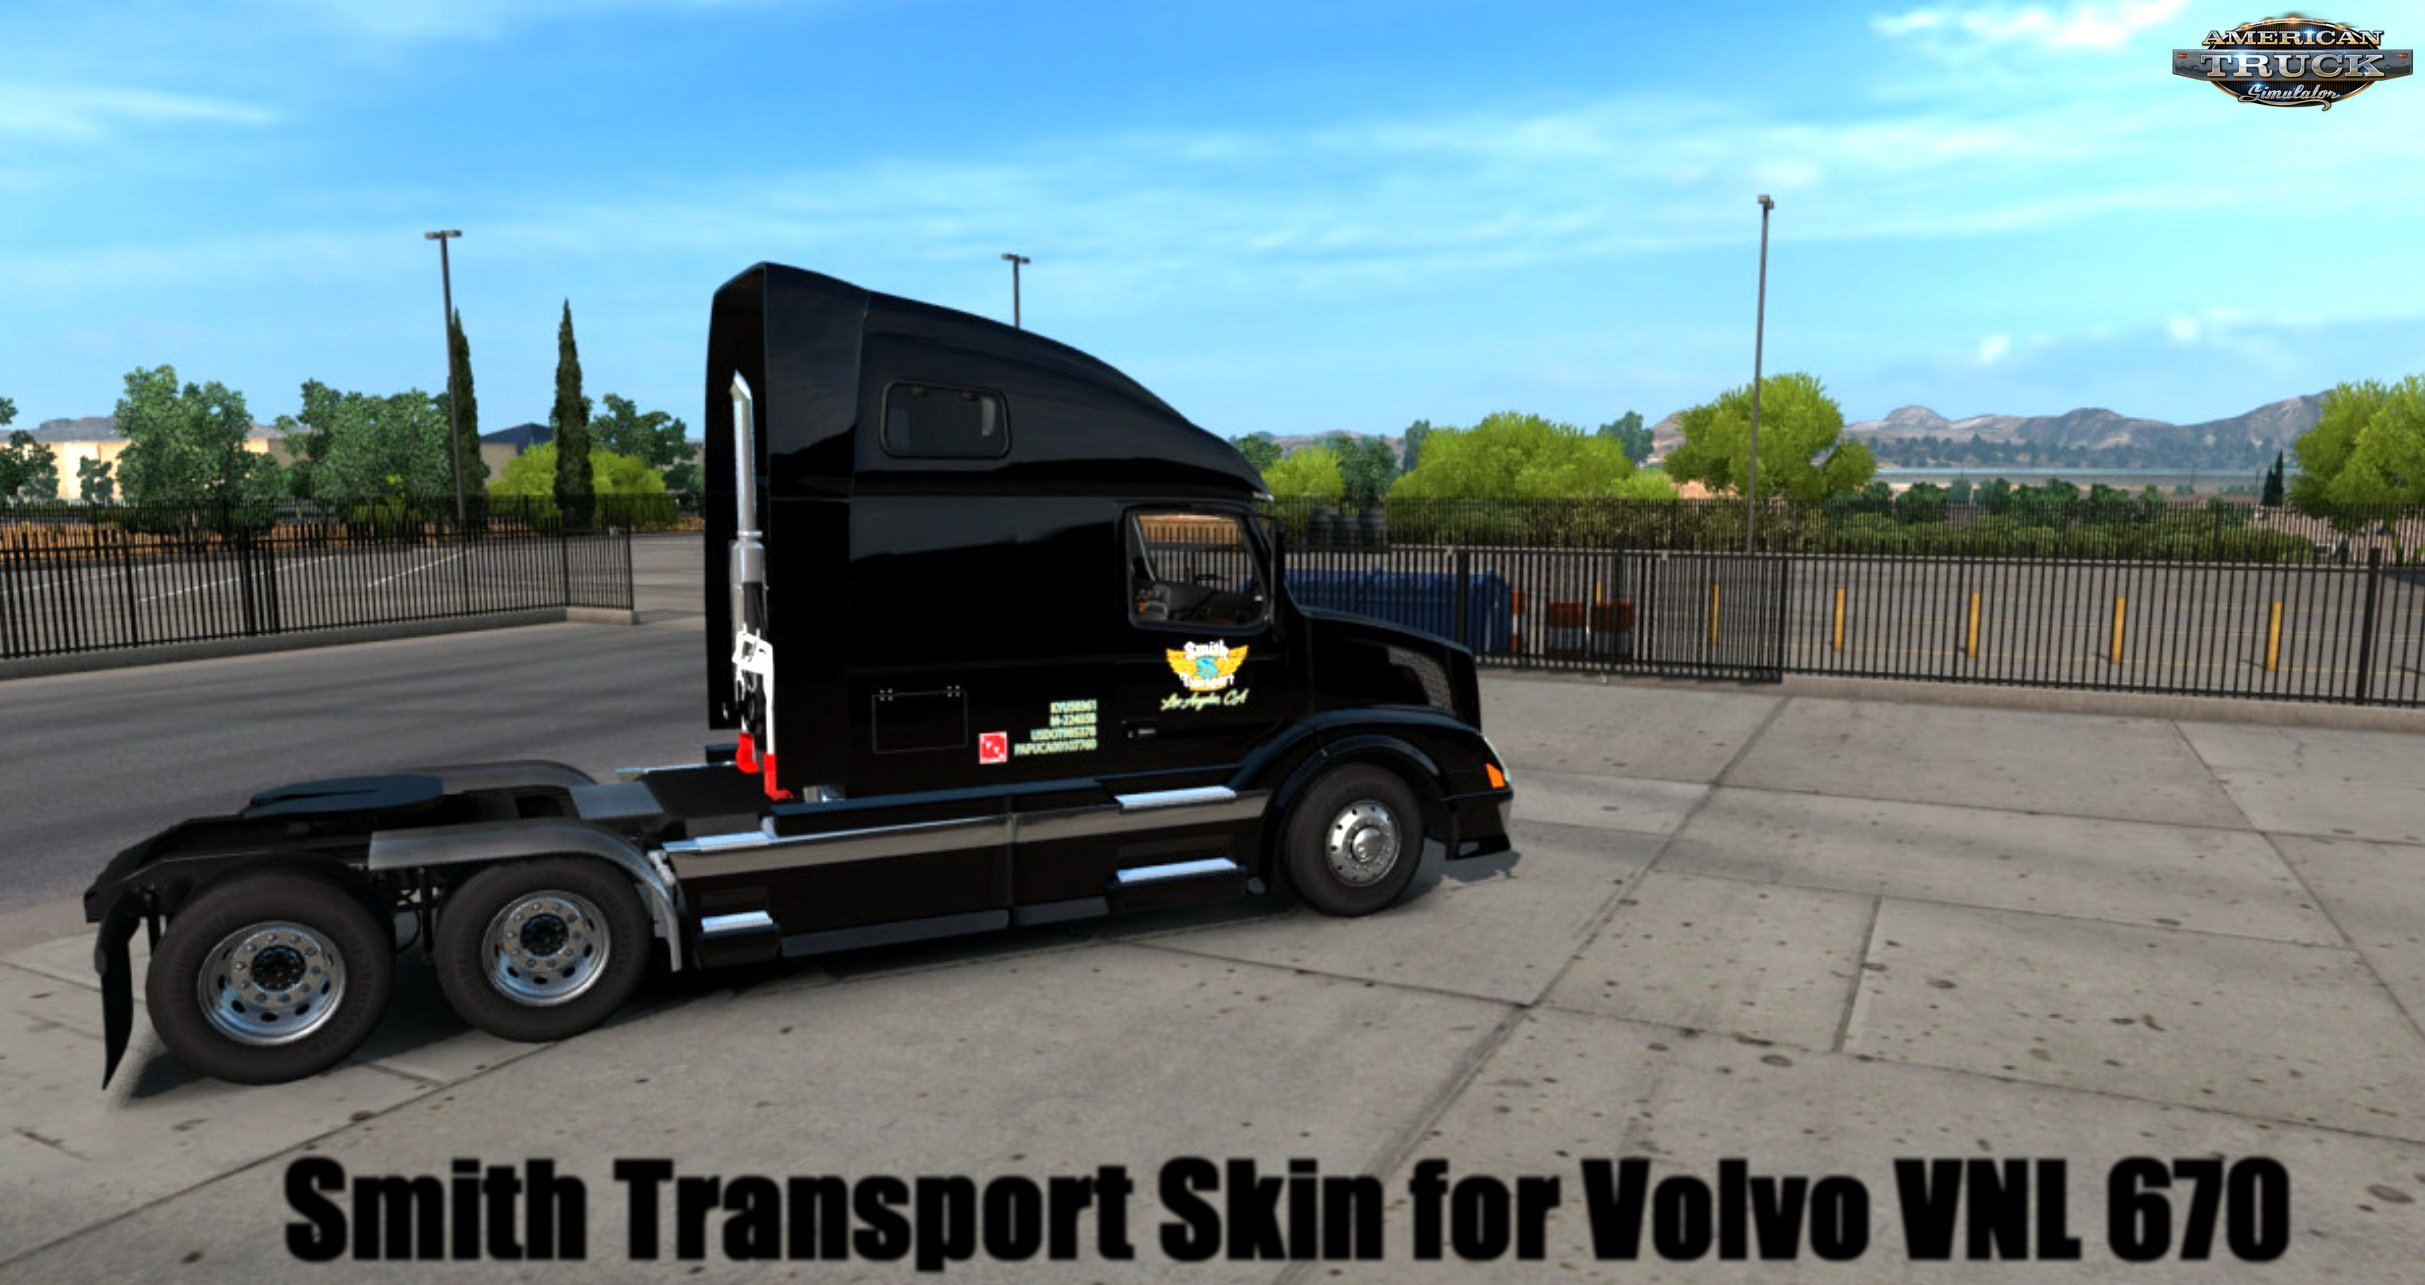 Smith Transport Skin for Volvo VNL 670 v1.0 (1.30.x)